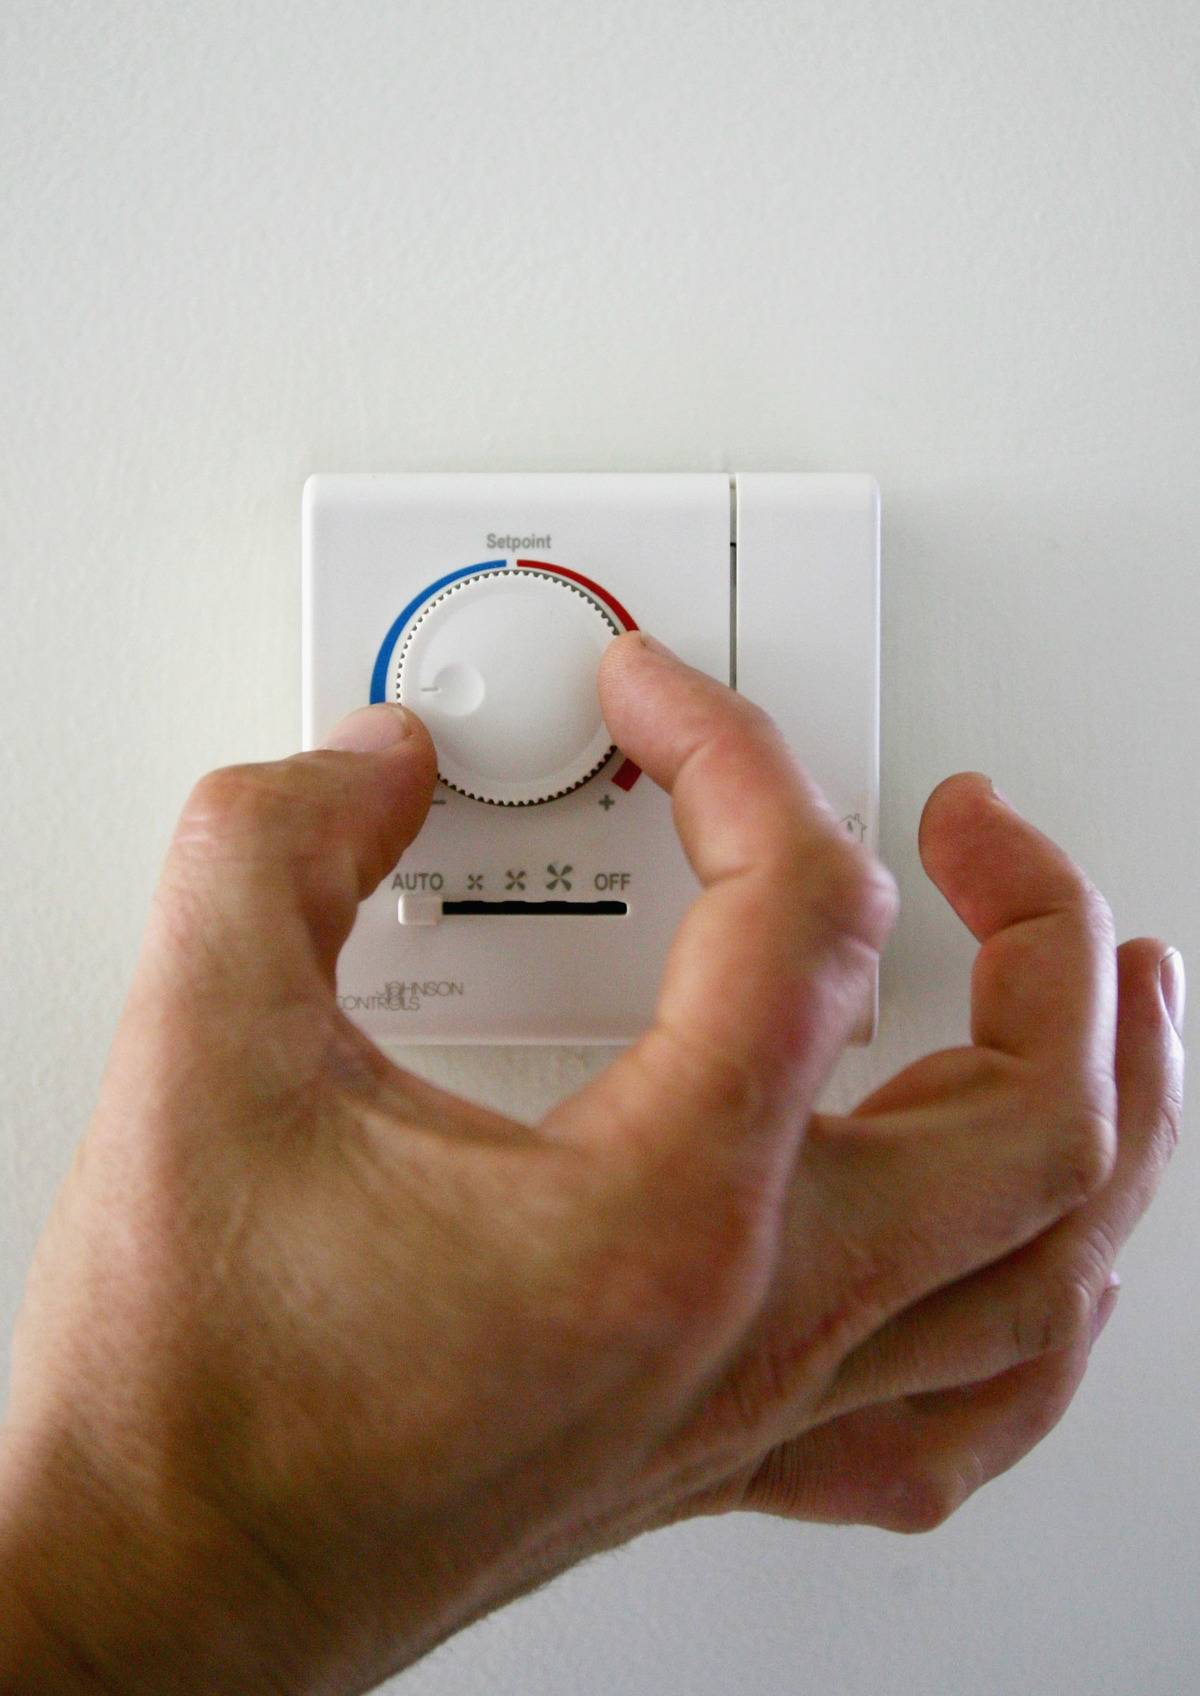 person with hand on dial of thermostat turning it cold